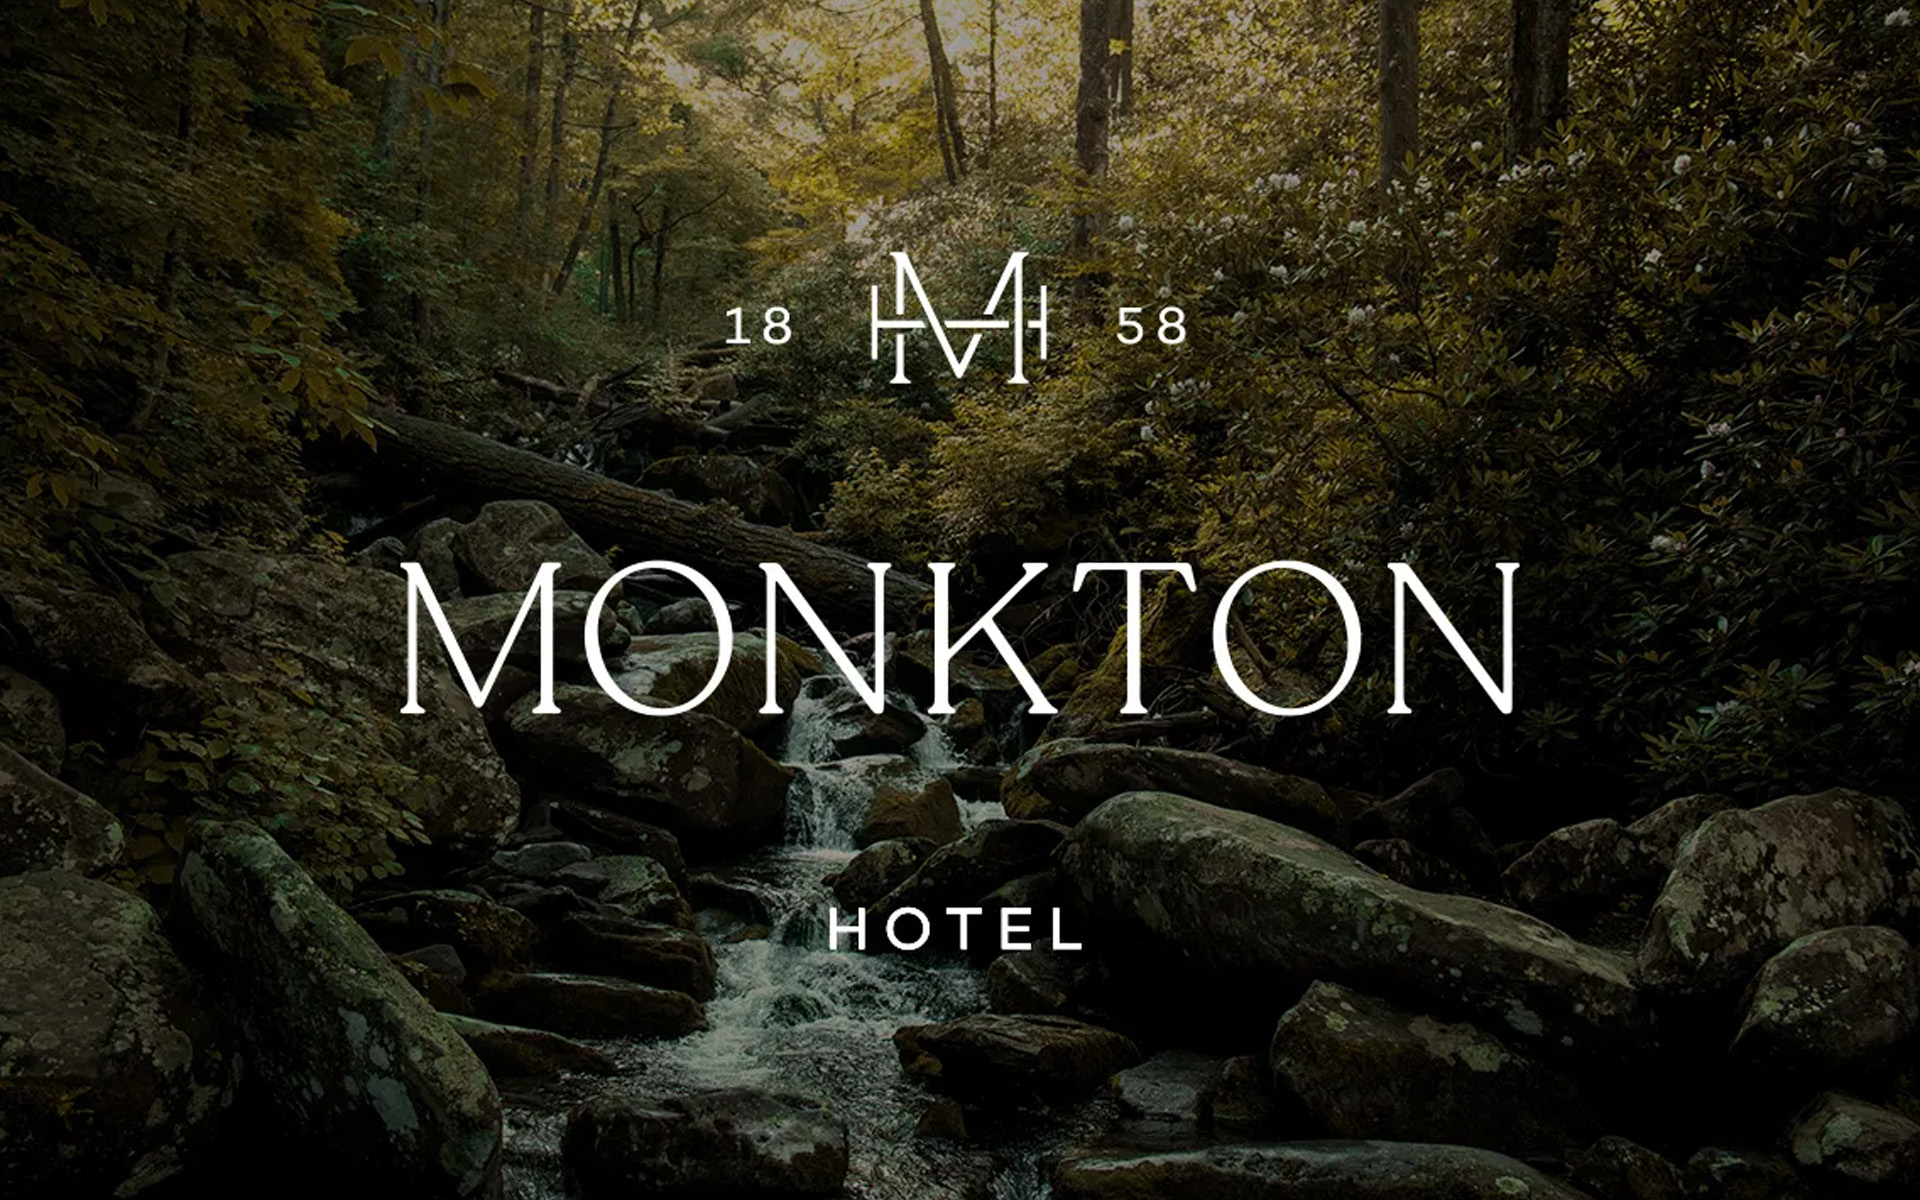 The Monkton Hotel